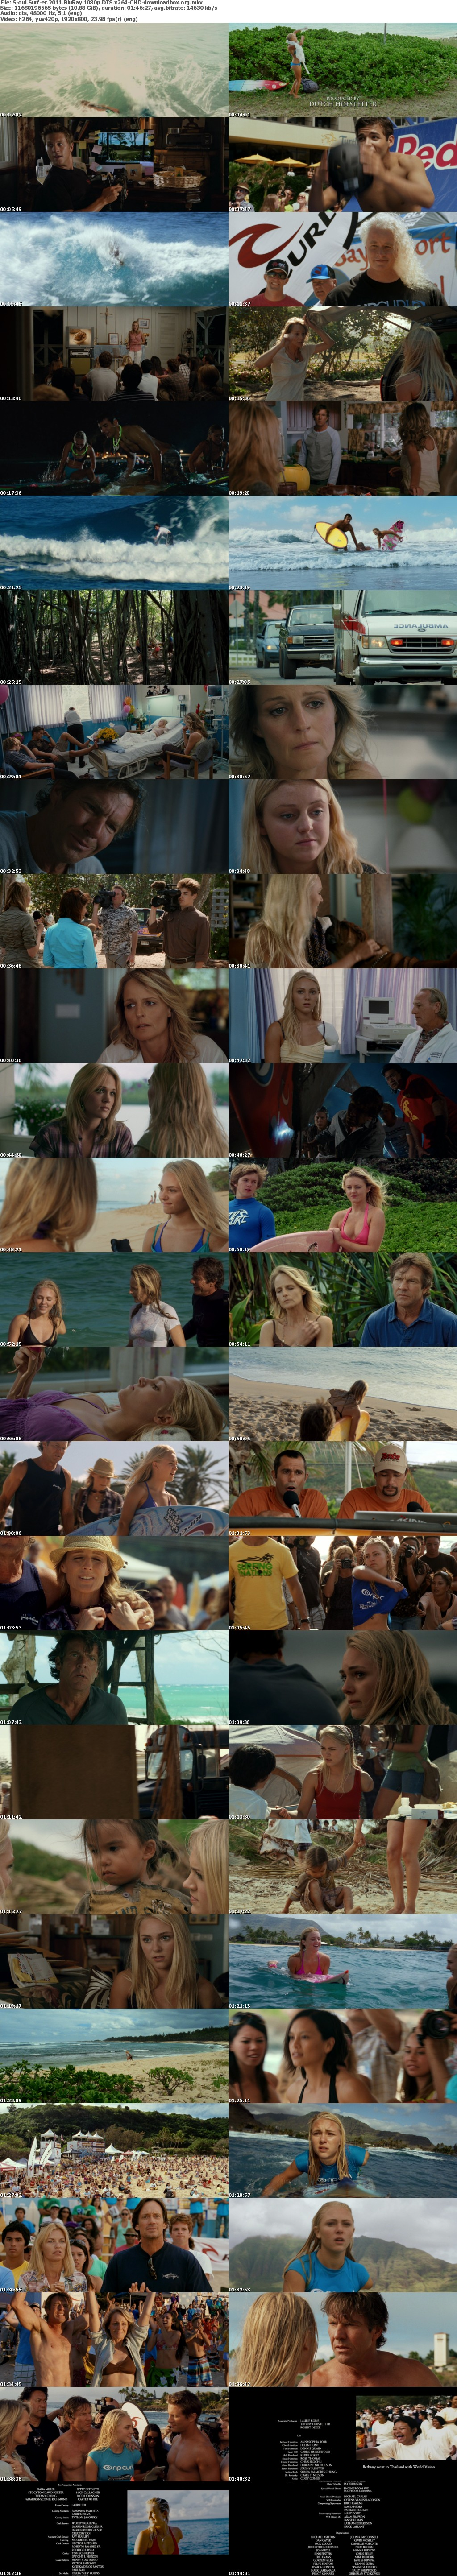 Soul Surfer 2011 BluRay 1080p DTS x264-CHD